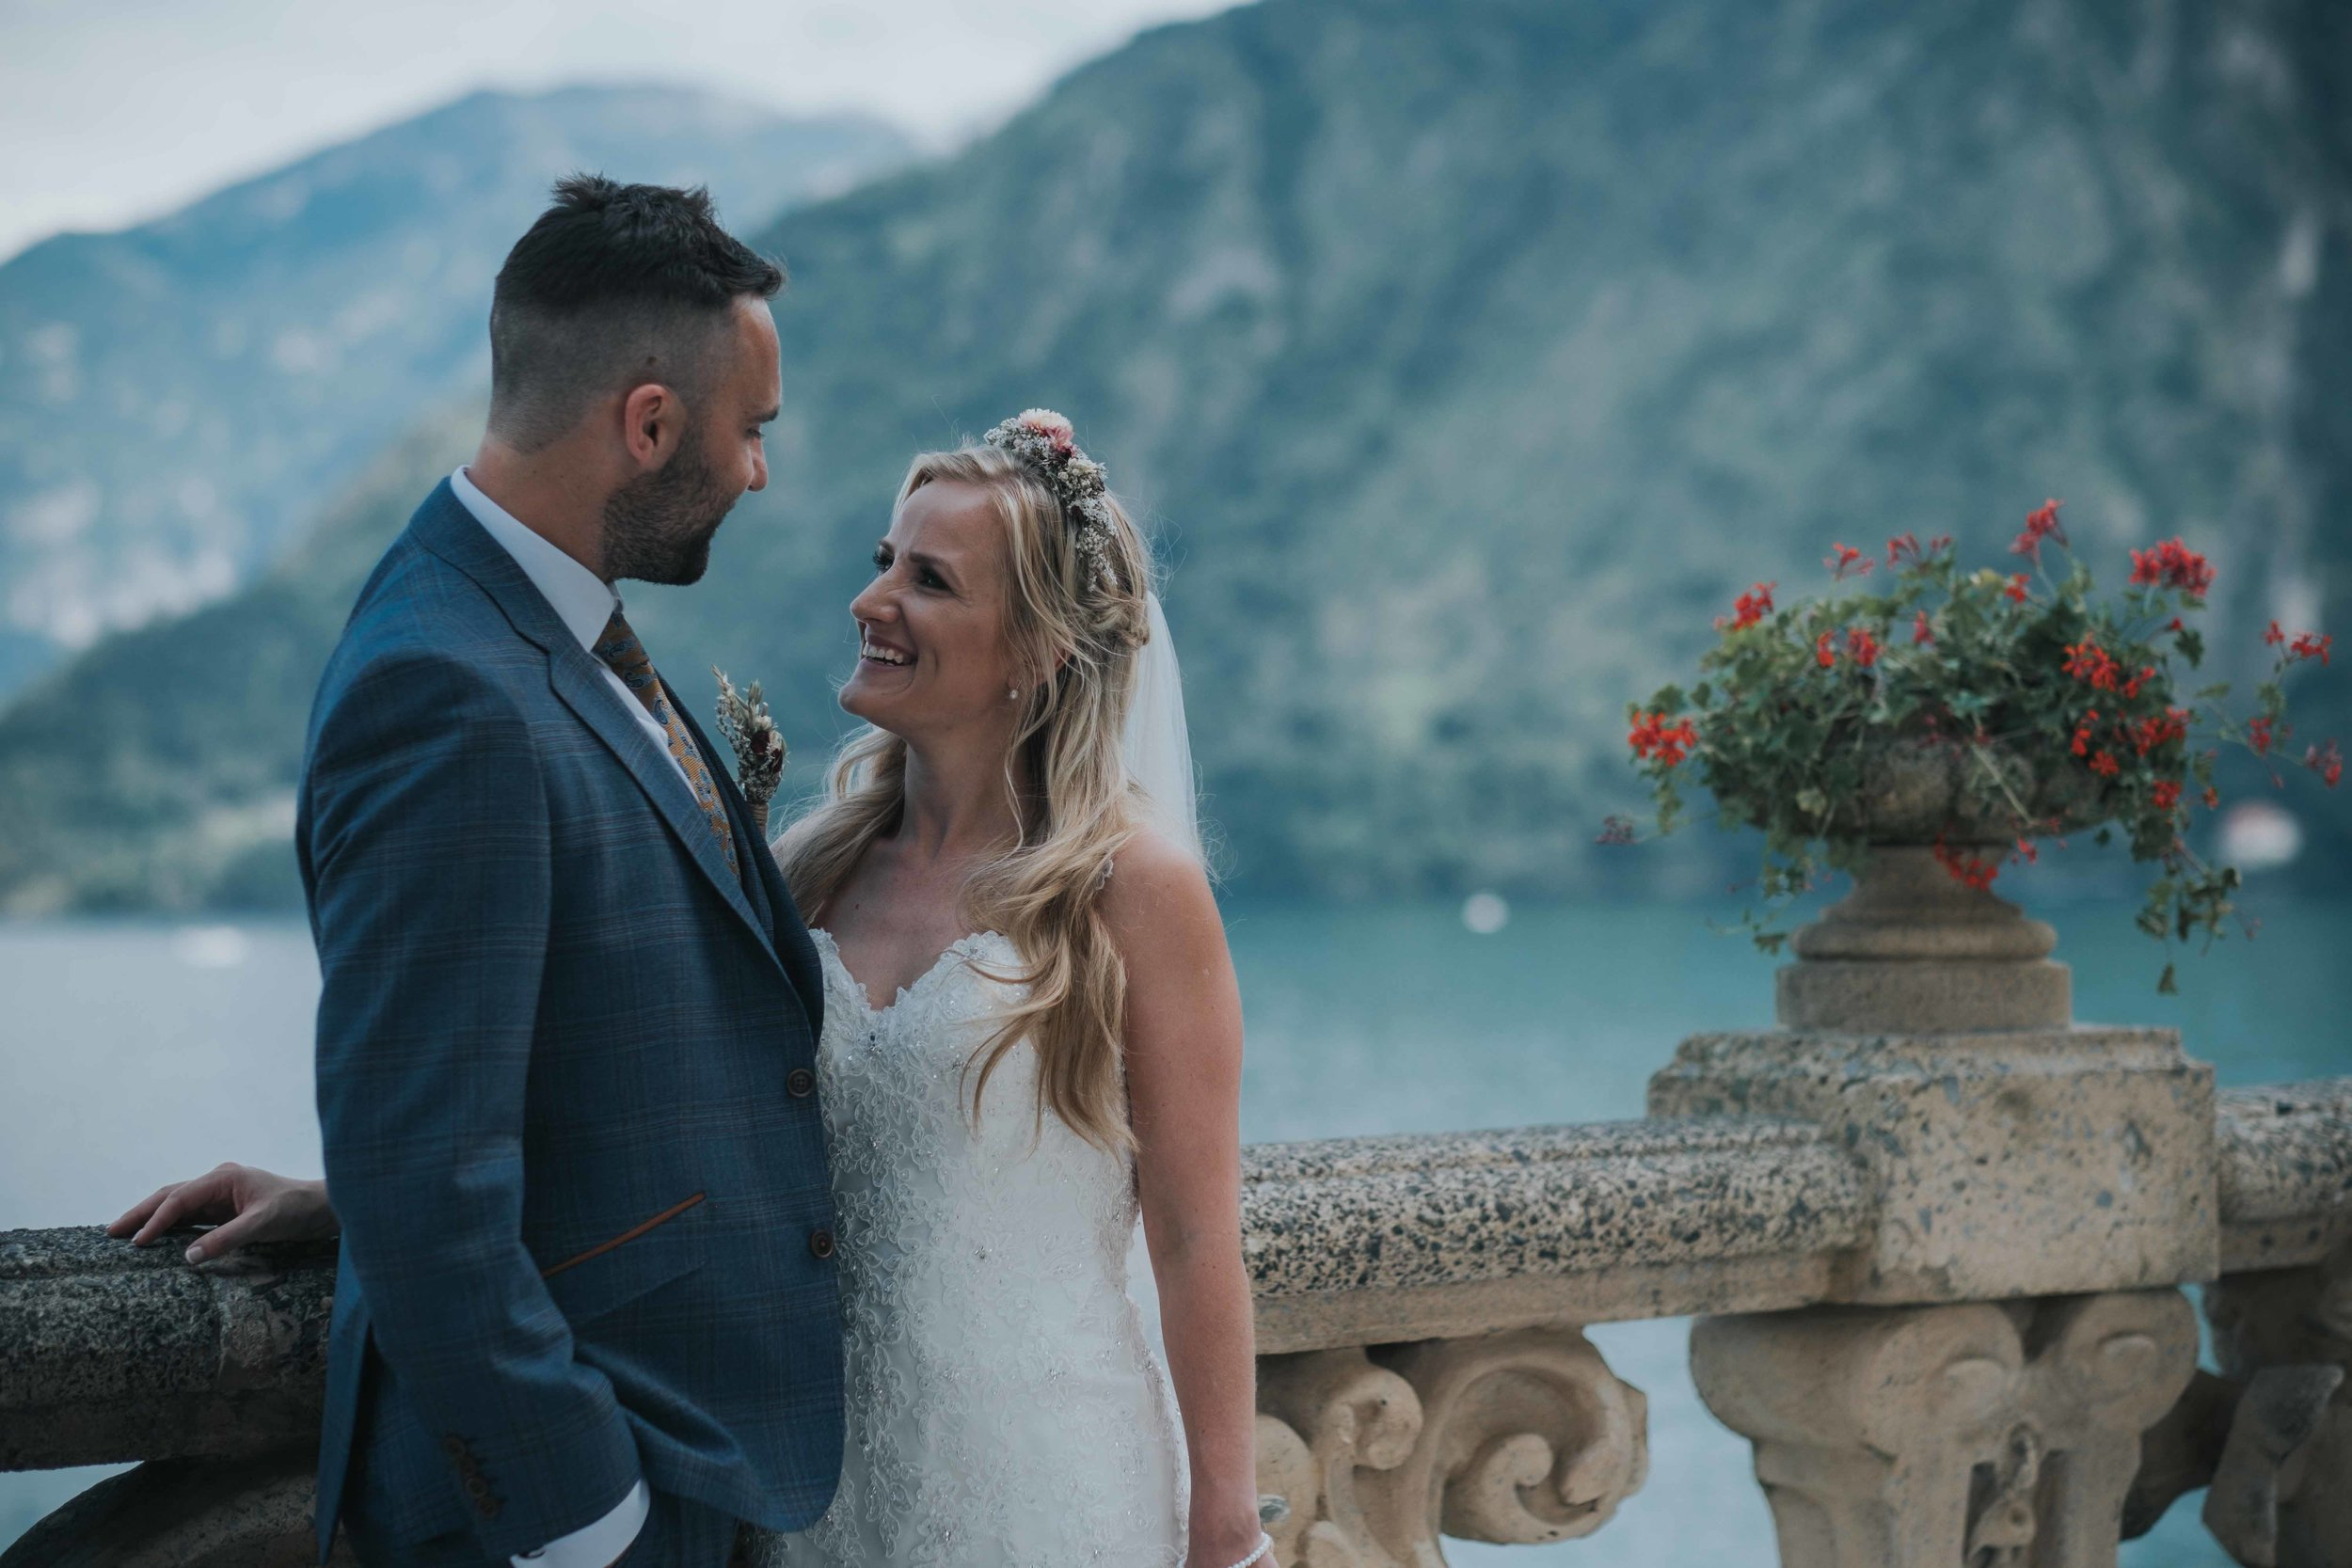 Laco Como Italy destination wedding photographer cheshire north west england documentry photography (66 of 117).jpg